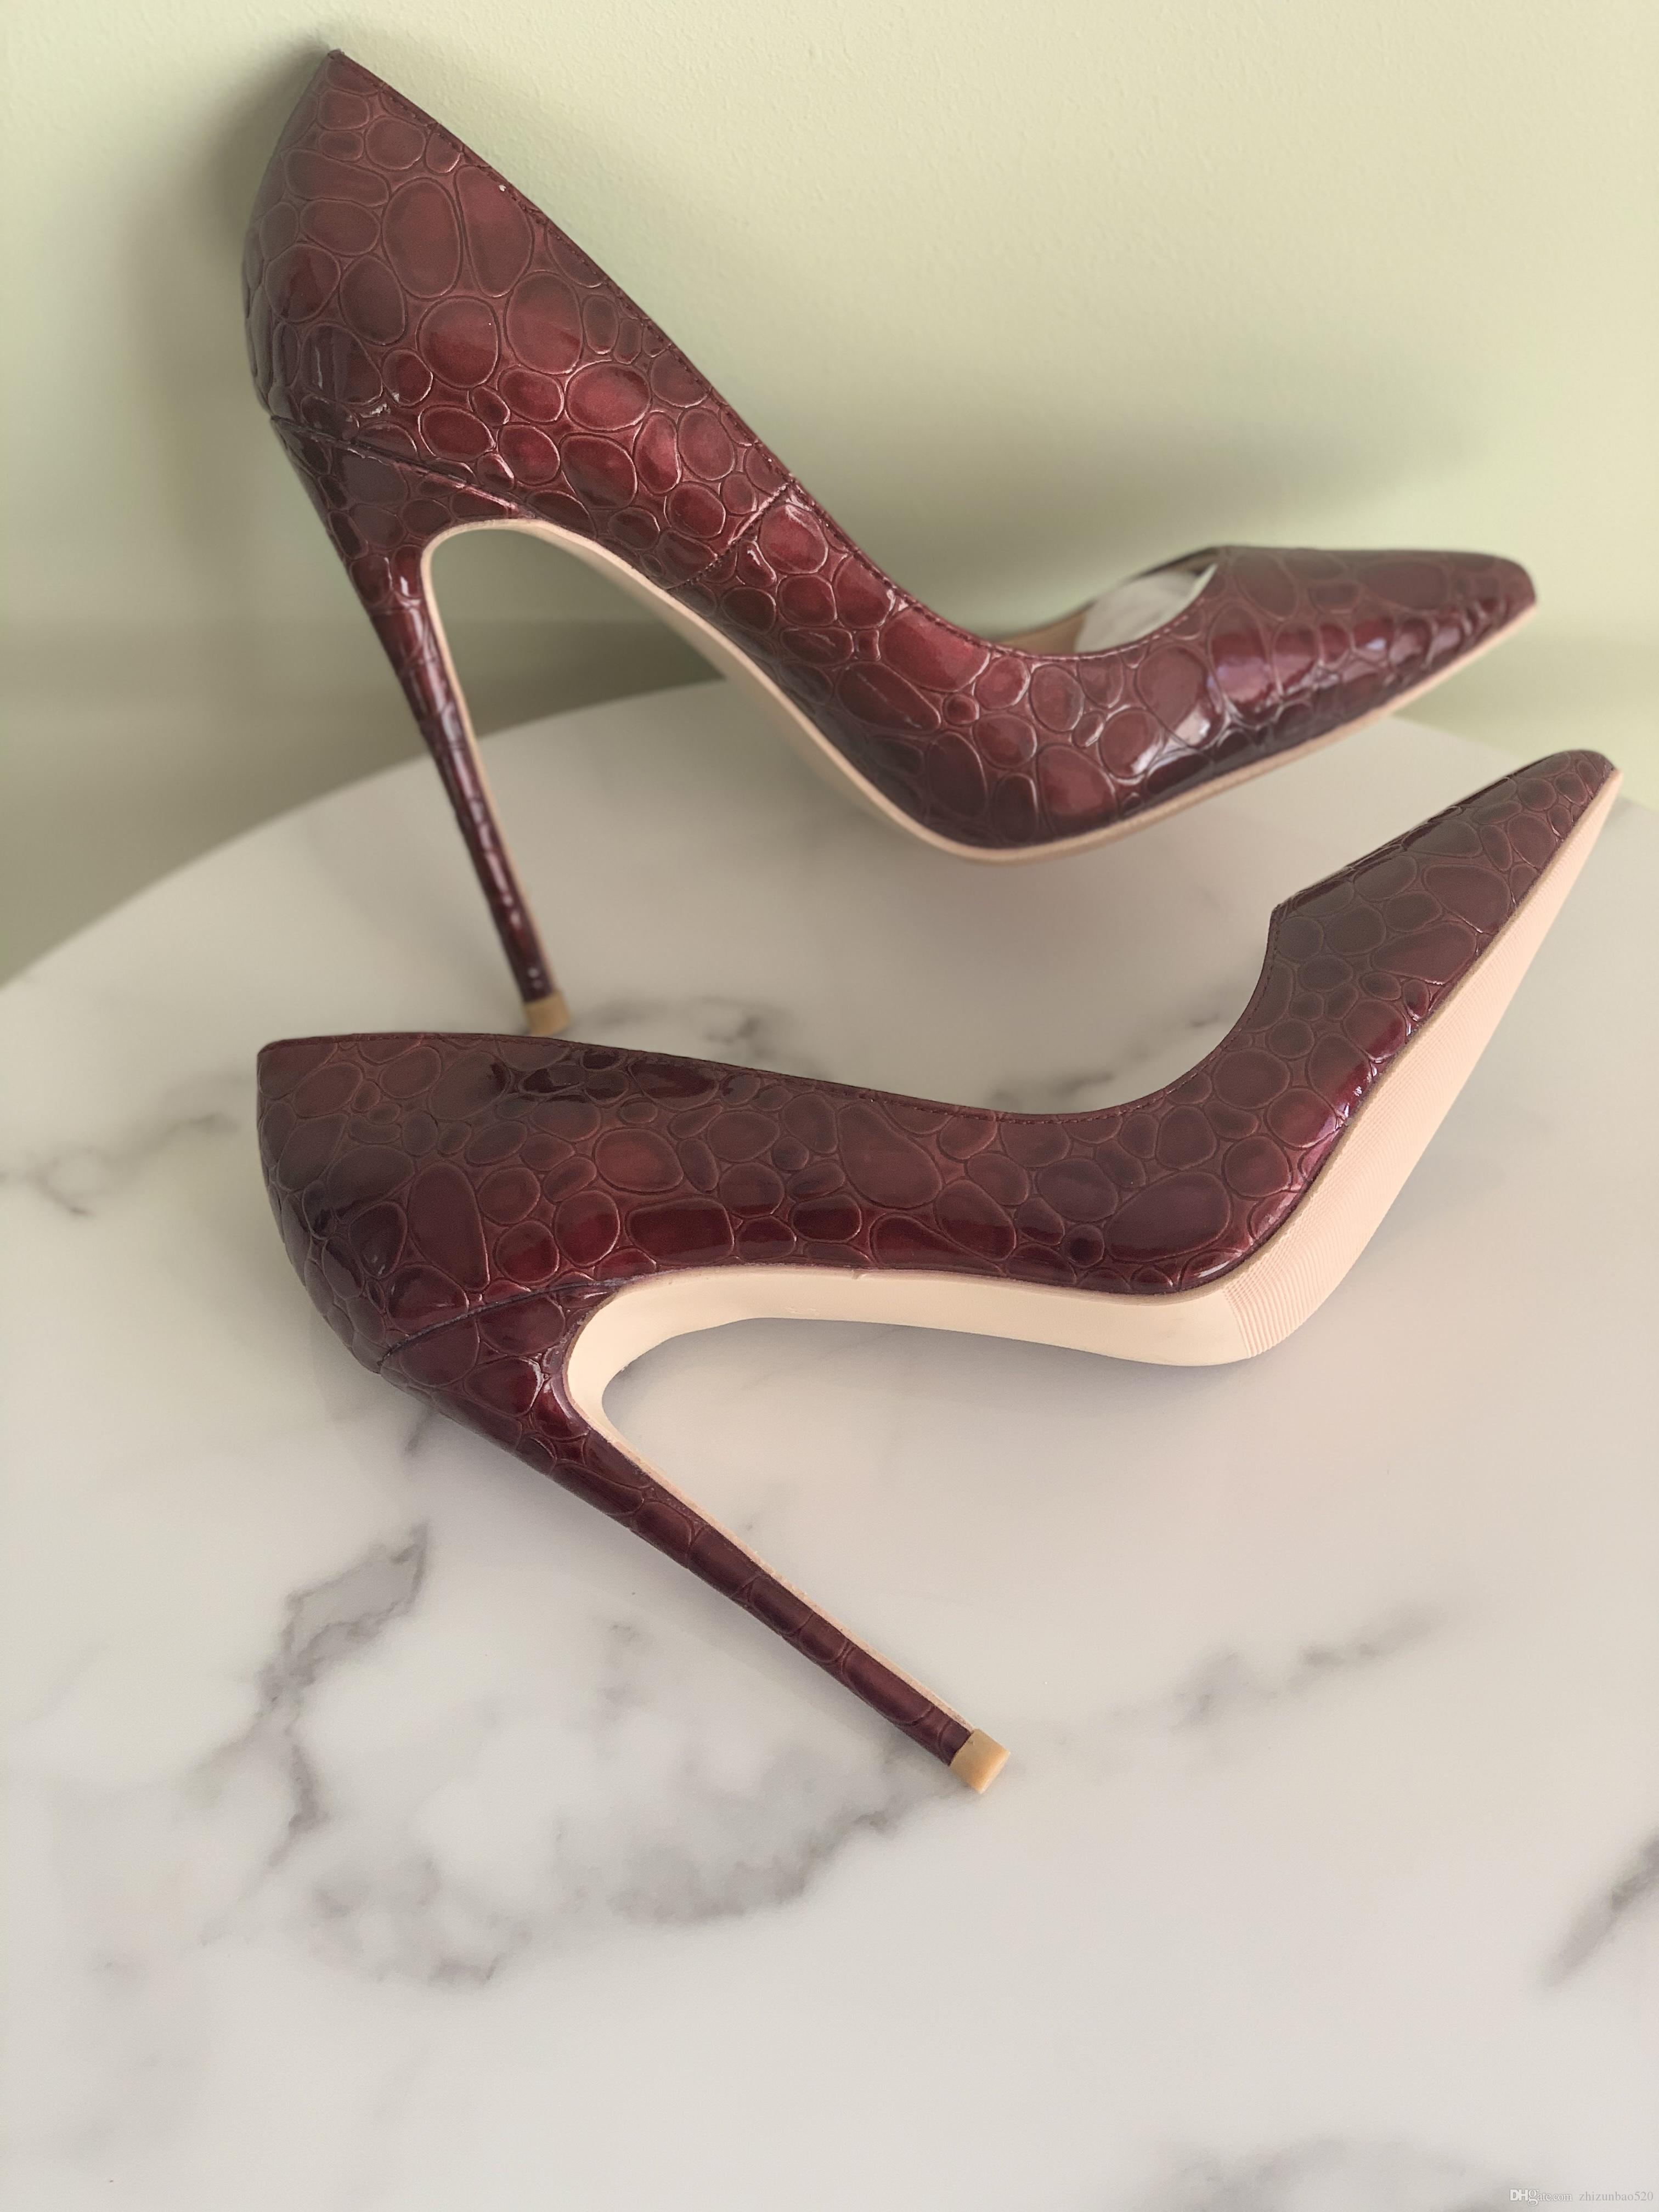 Casual Designer Sexy lady fashion women pumps Casual Designer burgundy patent leather Stiletto point toe flats shoes brand new party shoes